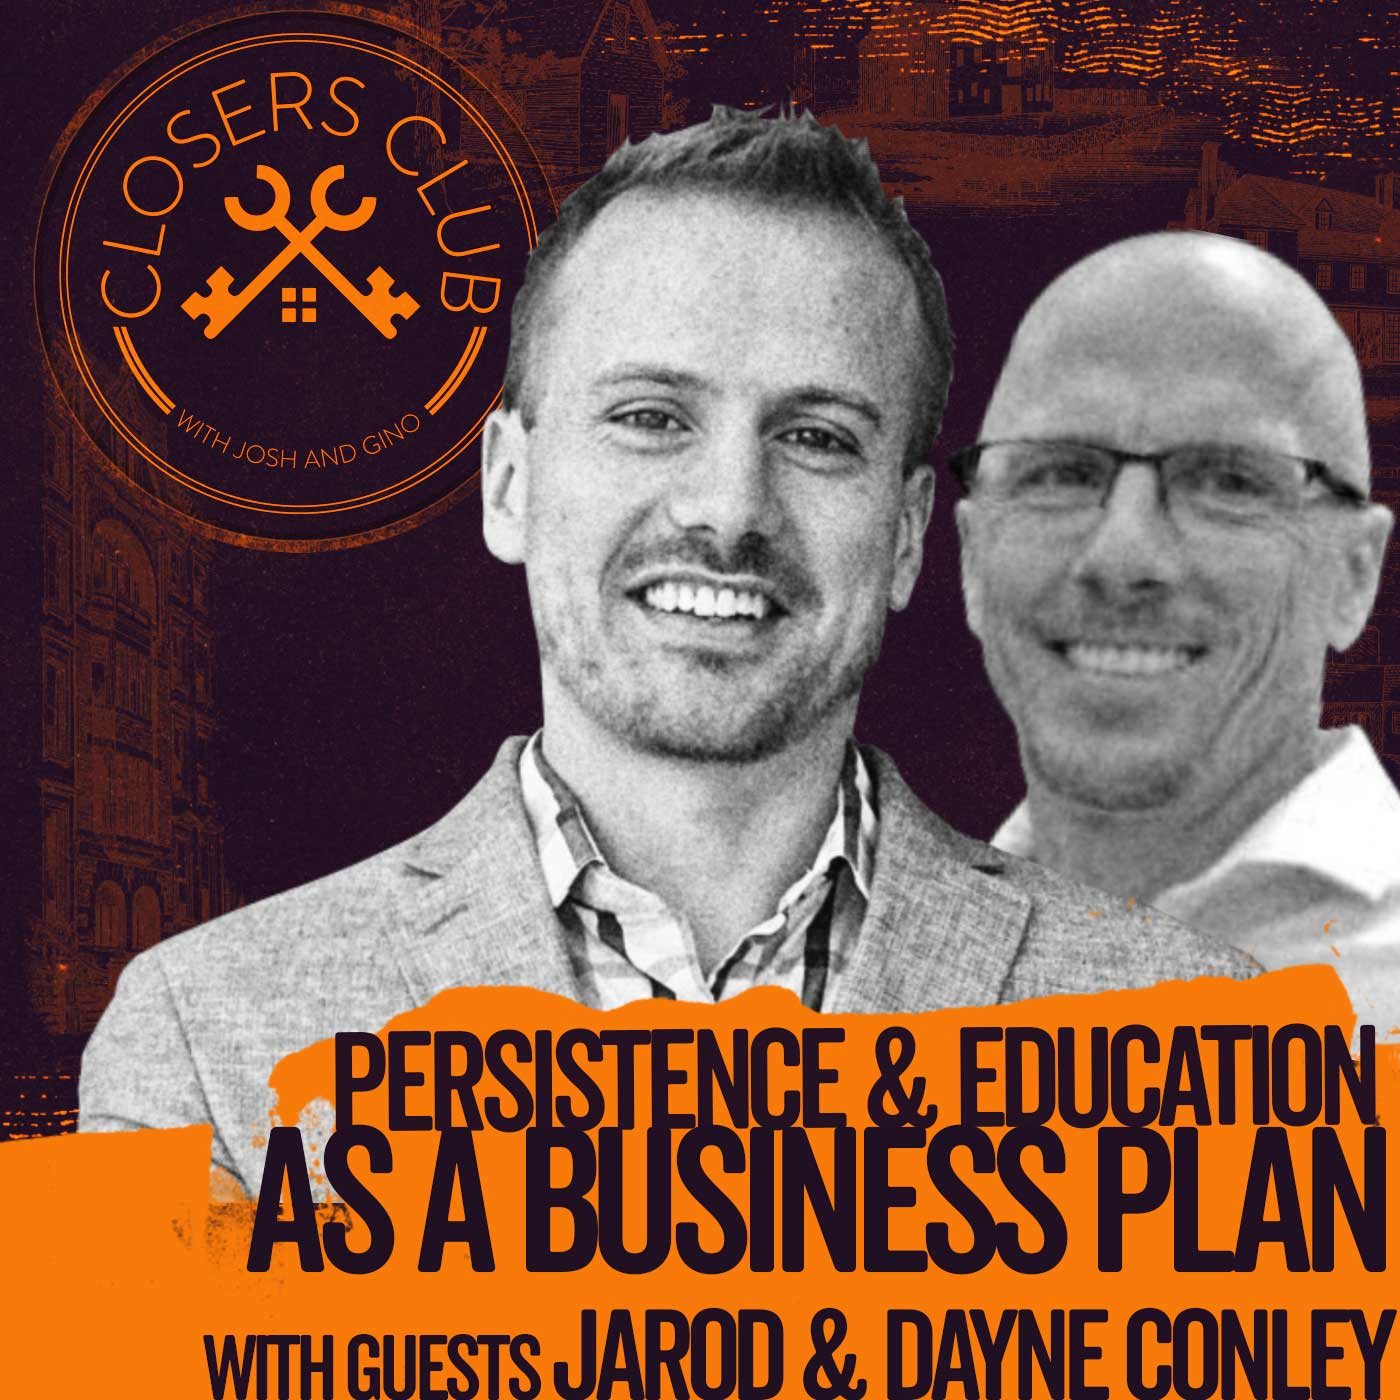 CC - Persistence & Education as a business plan with Jarod & Dayne Conley